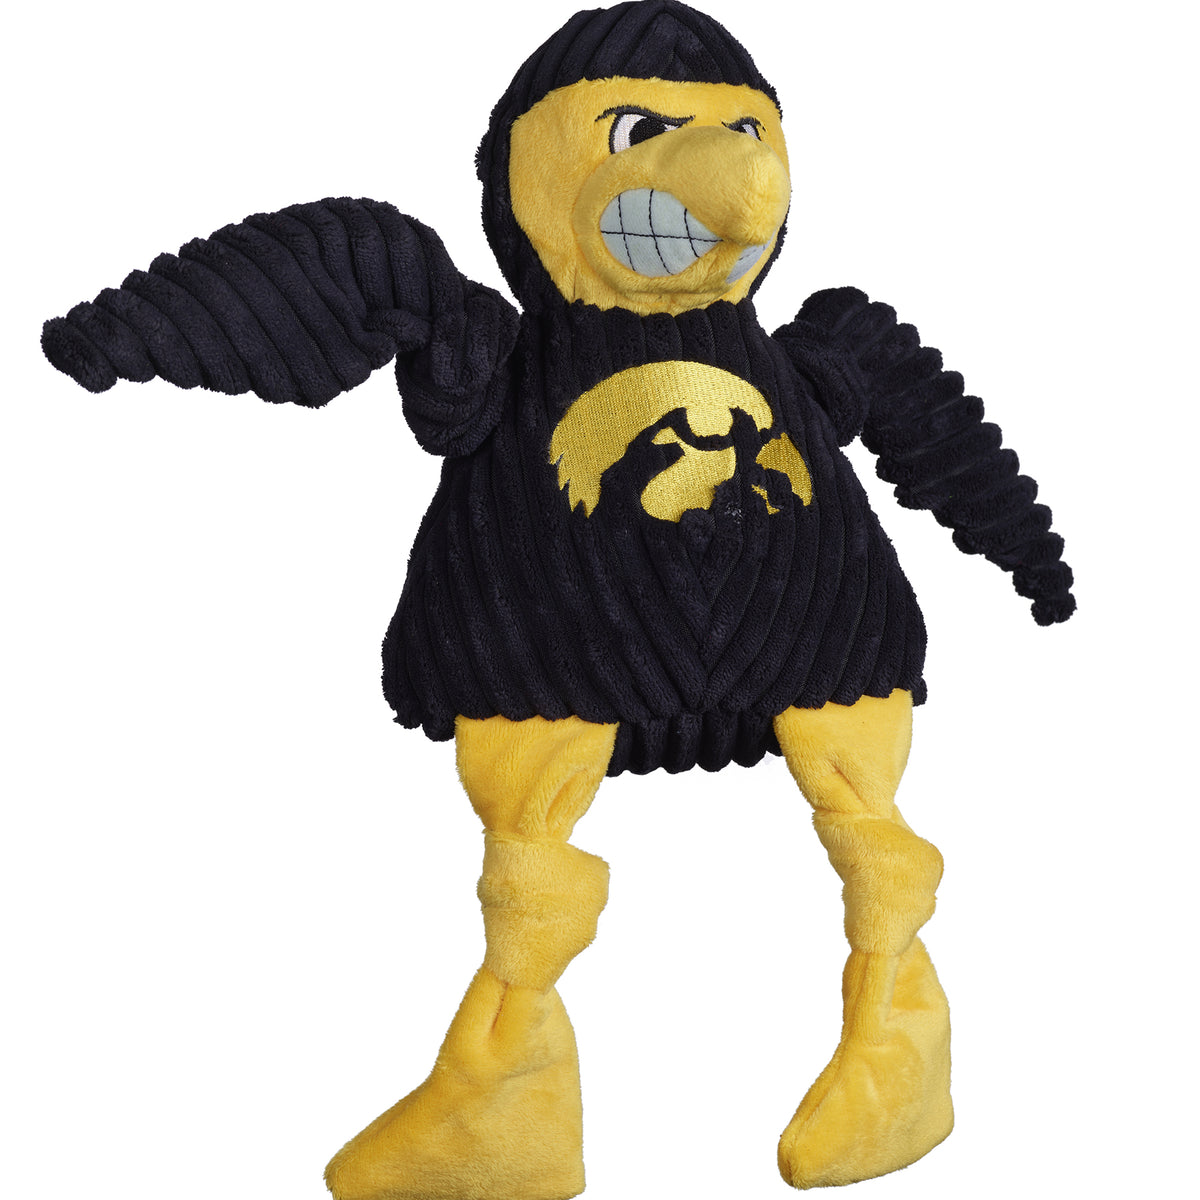 Iowa (U. of) Herky the Hawk Knottie™